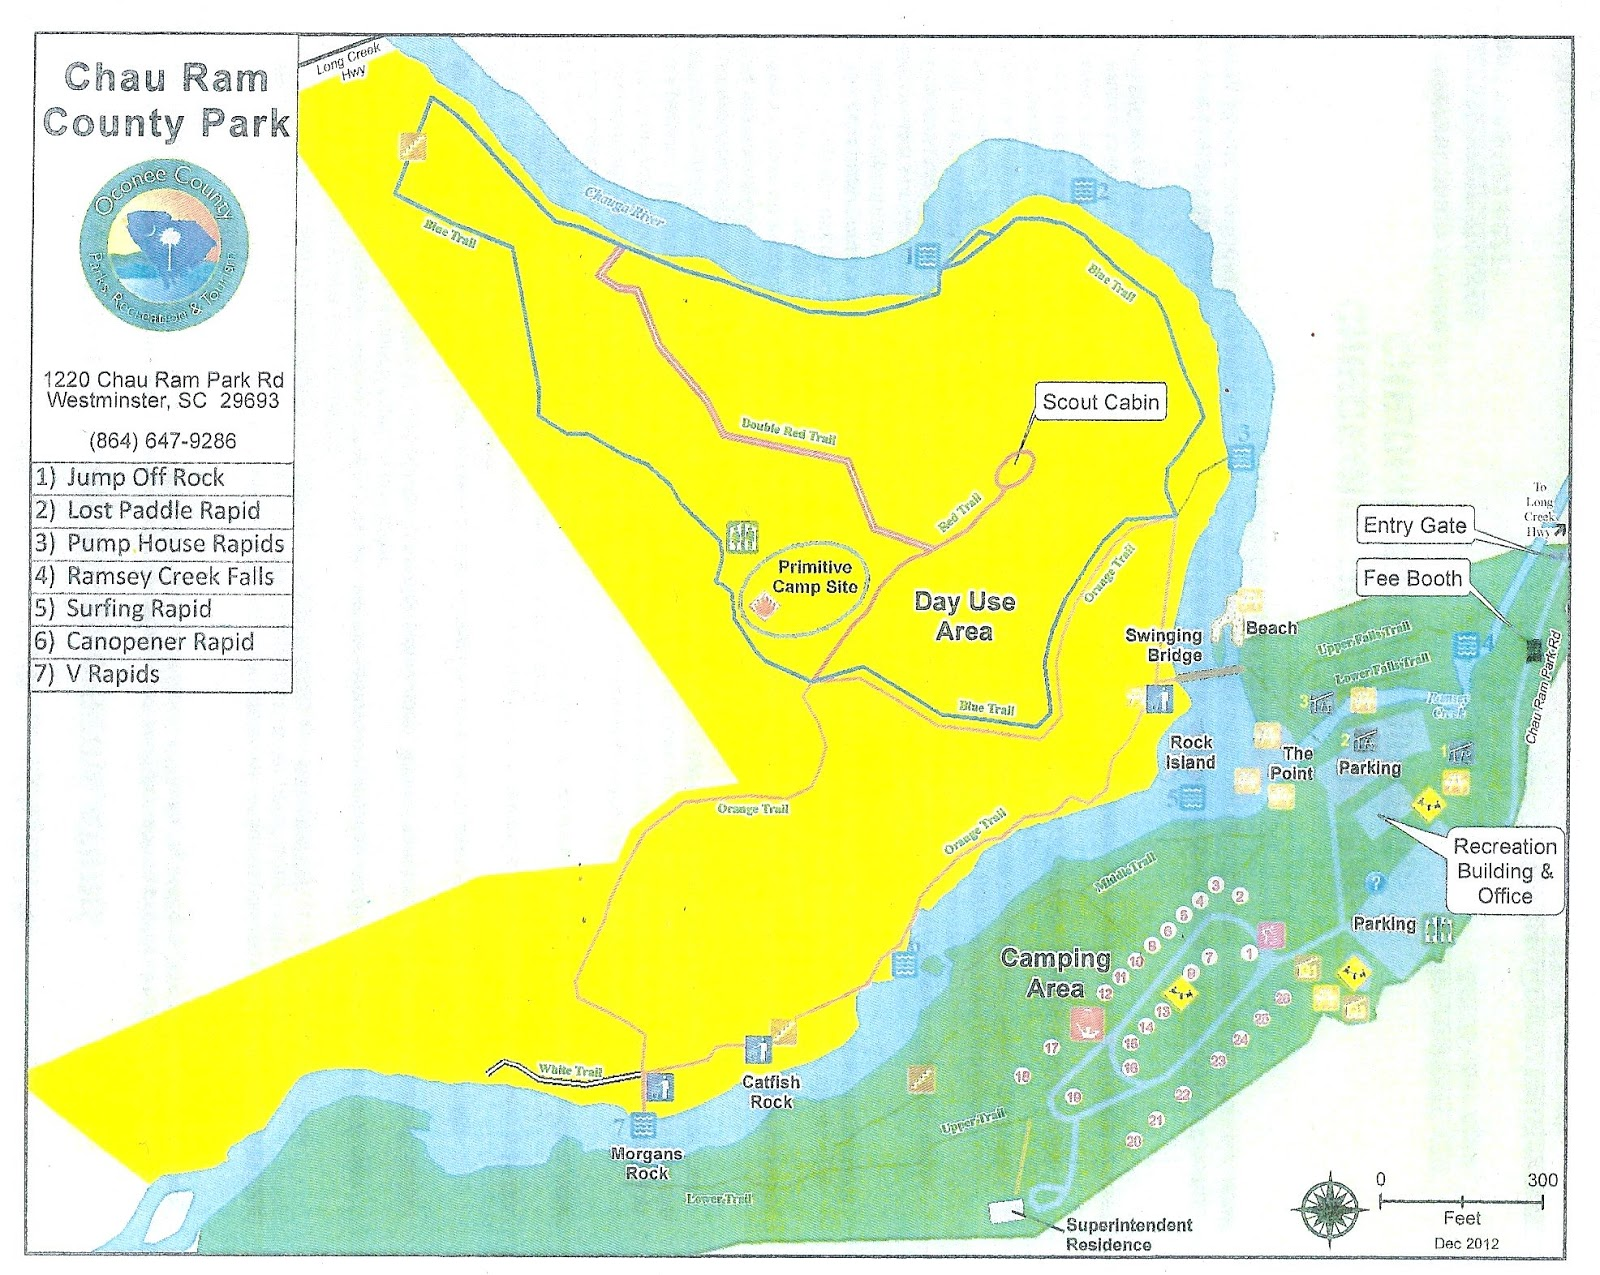 map of chau ram county park